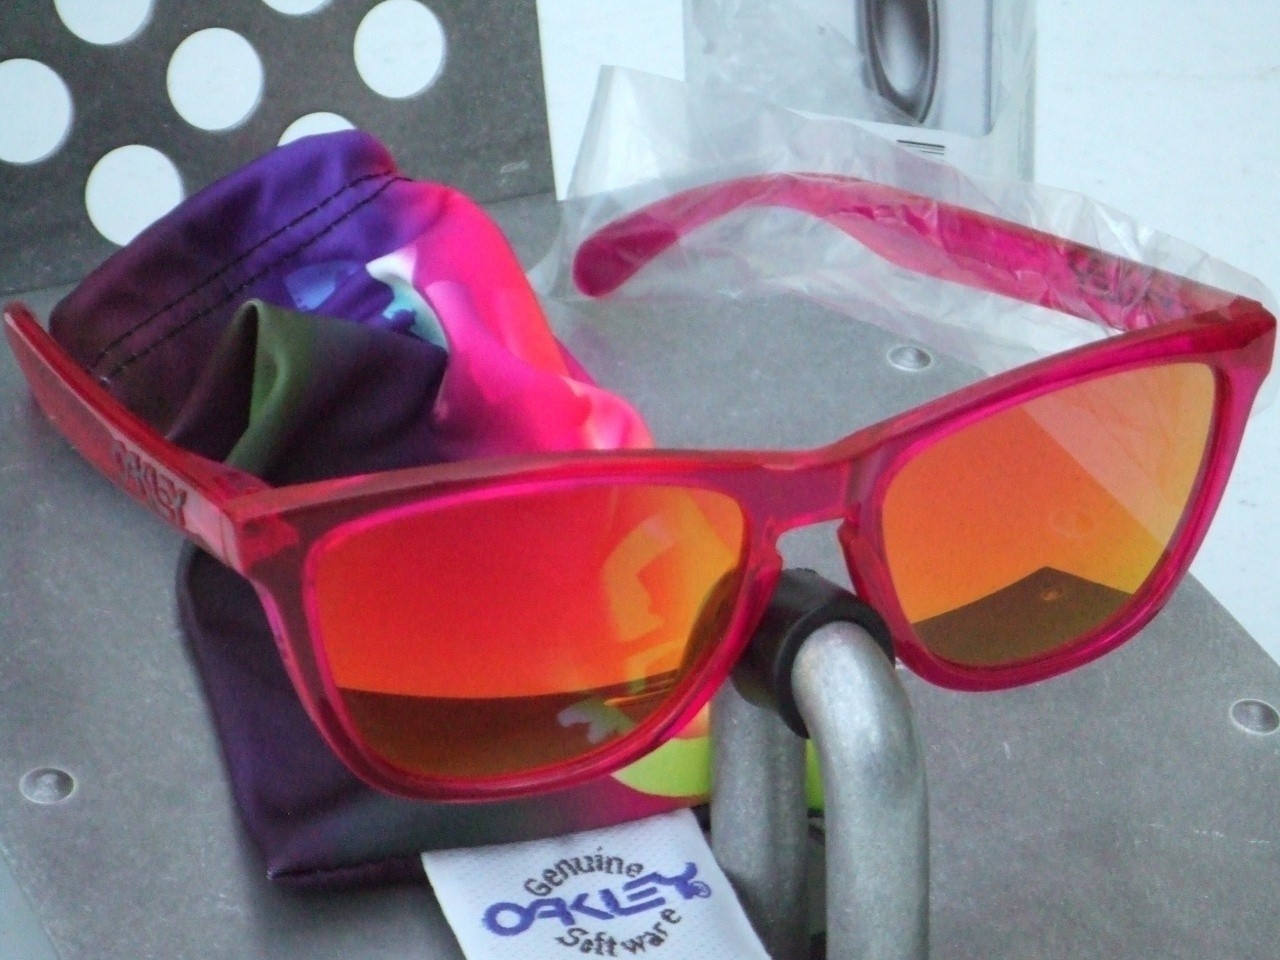 Collectors Frogskins Acid Pink/Replacement Ruby lenses.